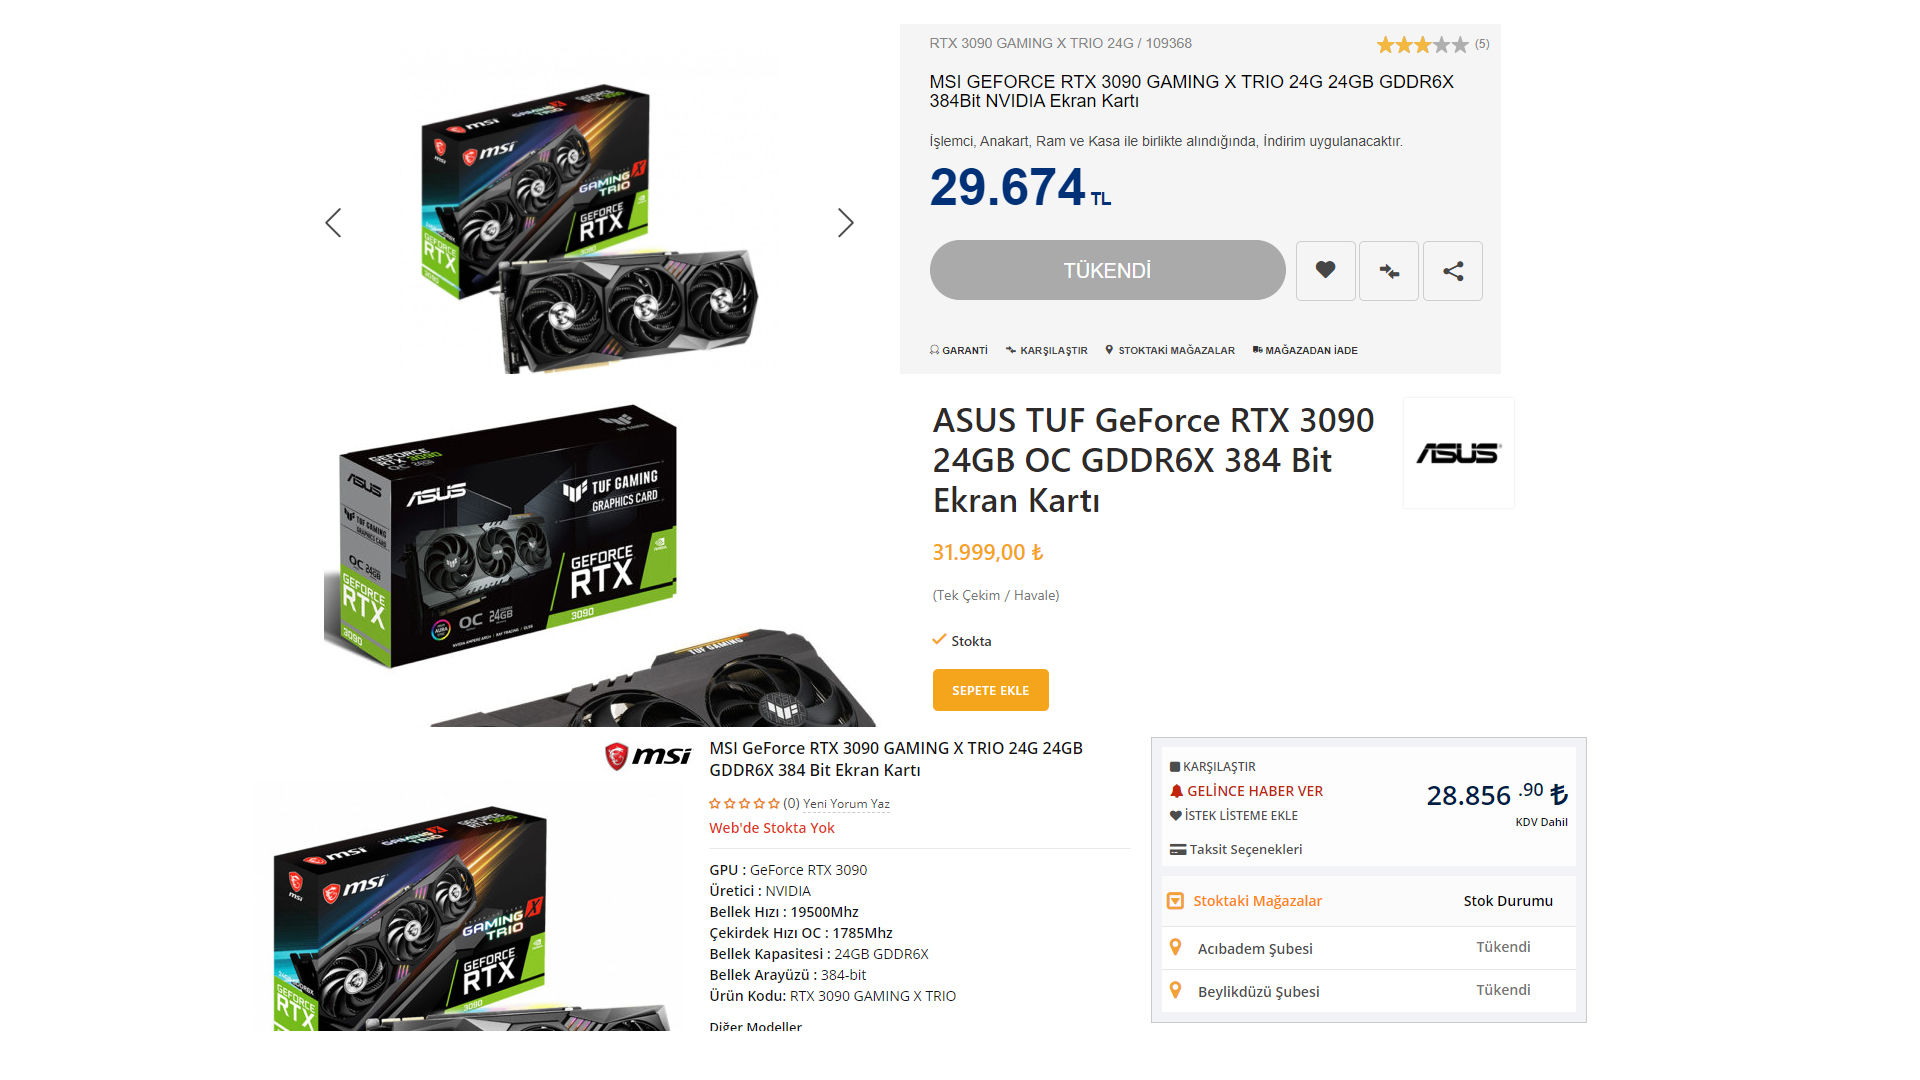 RTX 3090 prices are astonishing